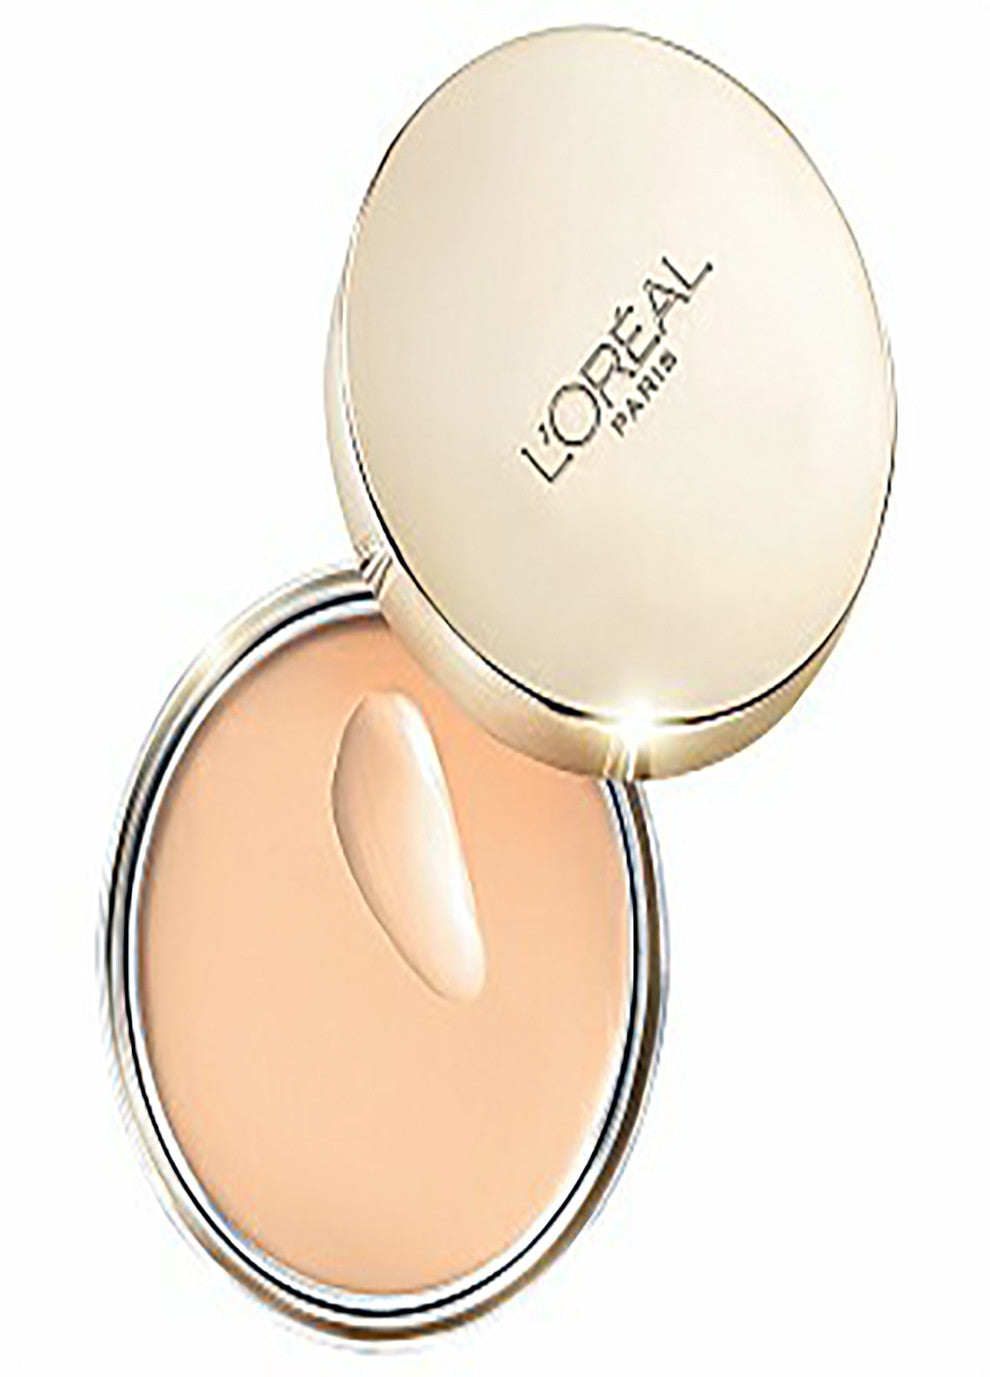 L'Oreal Visible Lift Repair Absolute Rapid Age Reversing SPF 16 Makeup #121 Light Ivory